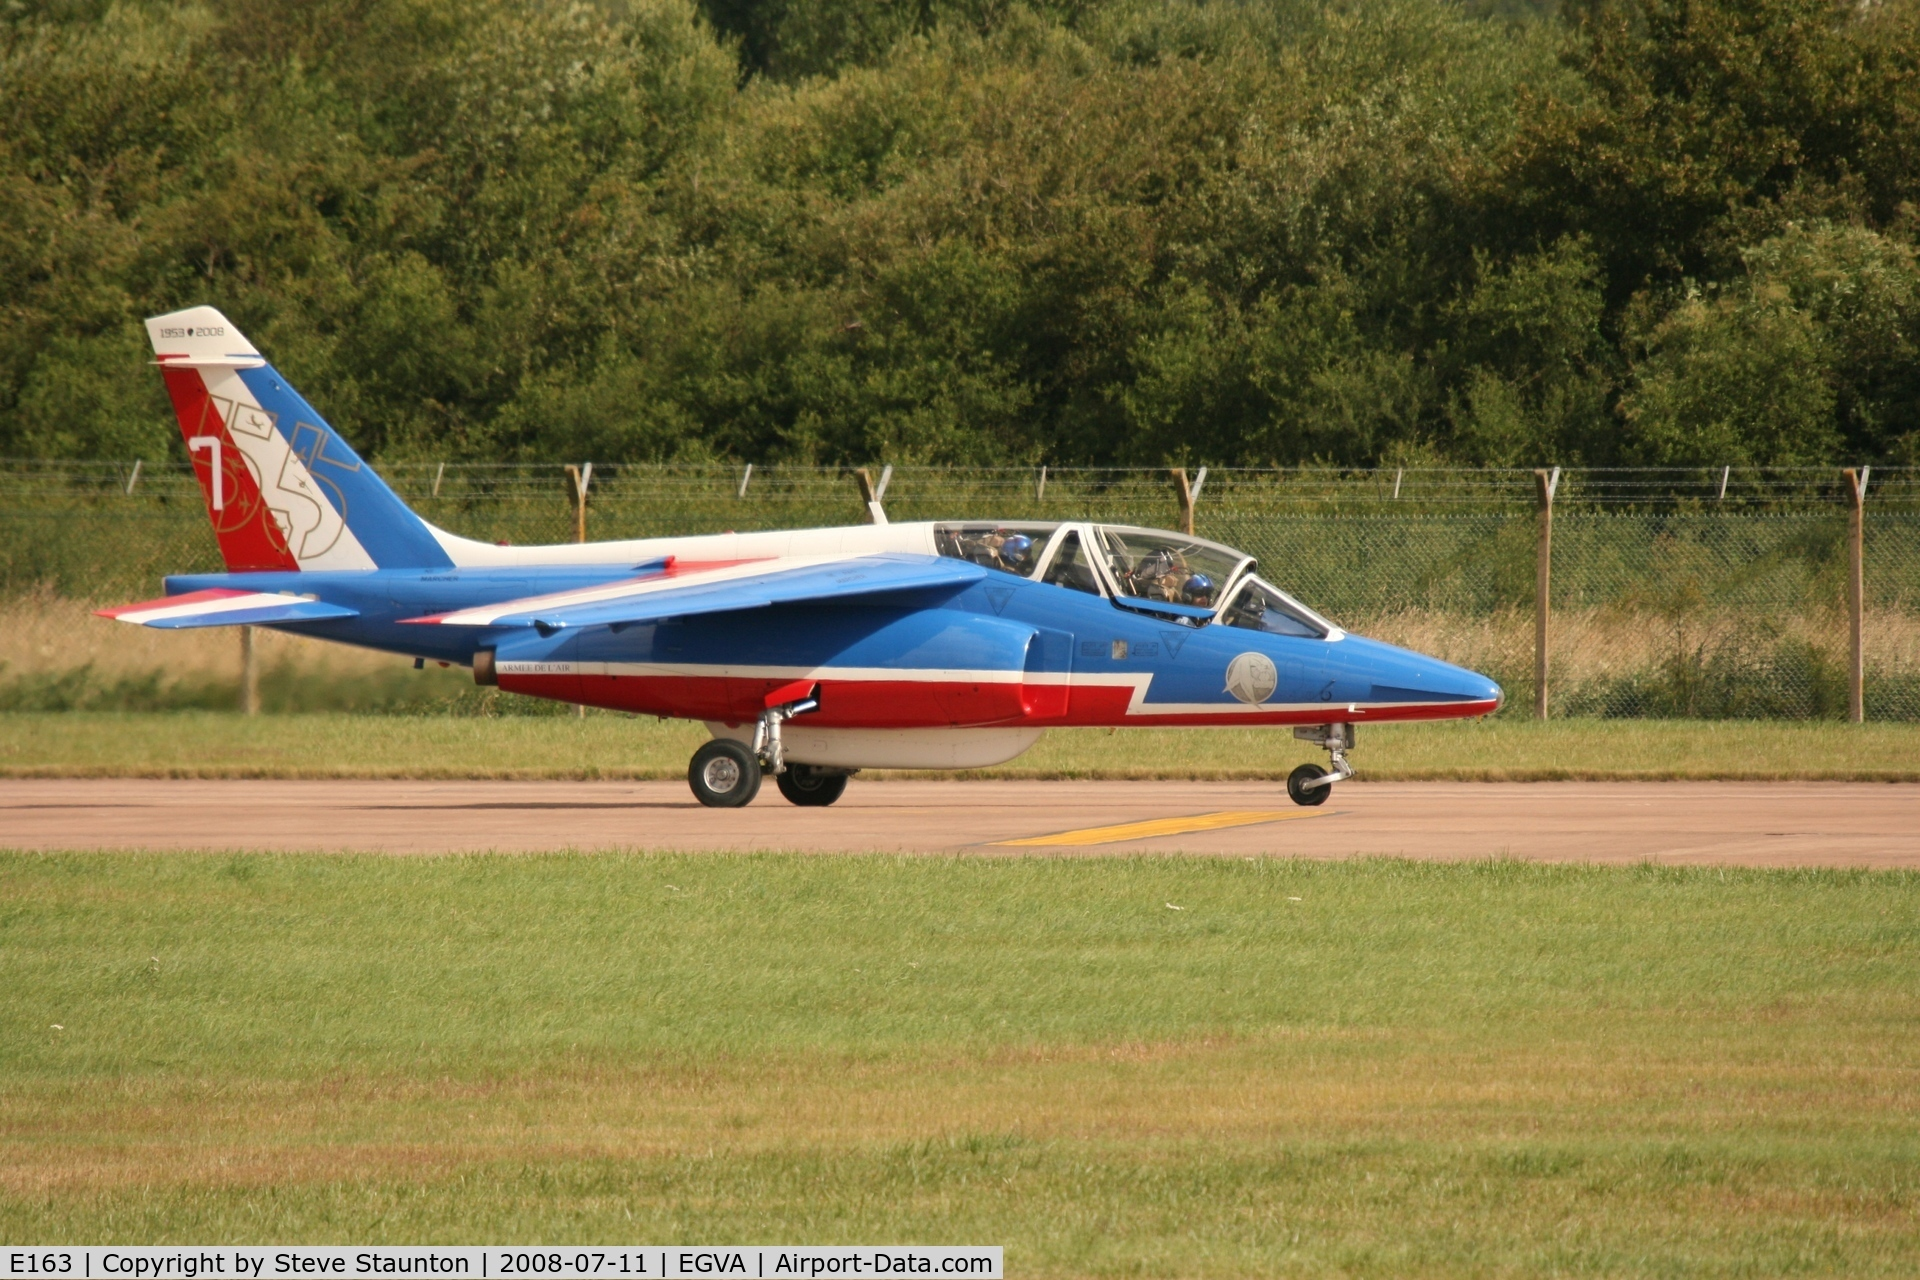 E163, Dassault-Dornier Alpha Jet E C/N E163, Taken at the Royal International Air Tattoo 2008 during arrivals and departures (show days cancelled due to bad weather)